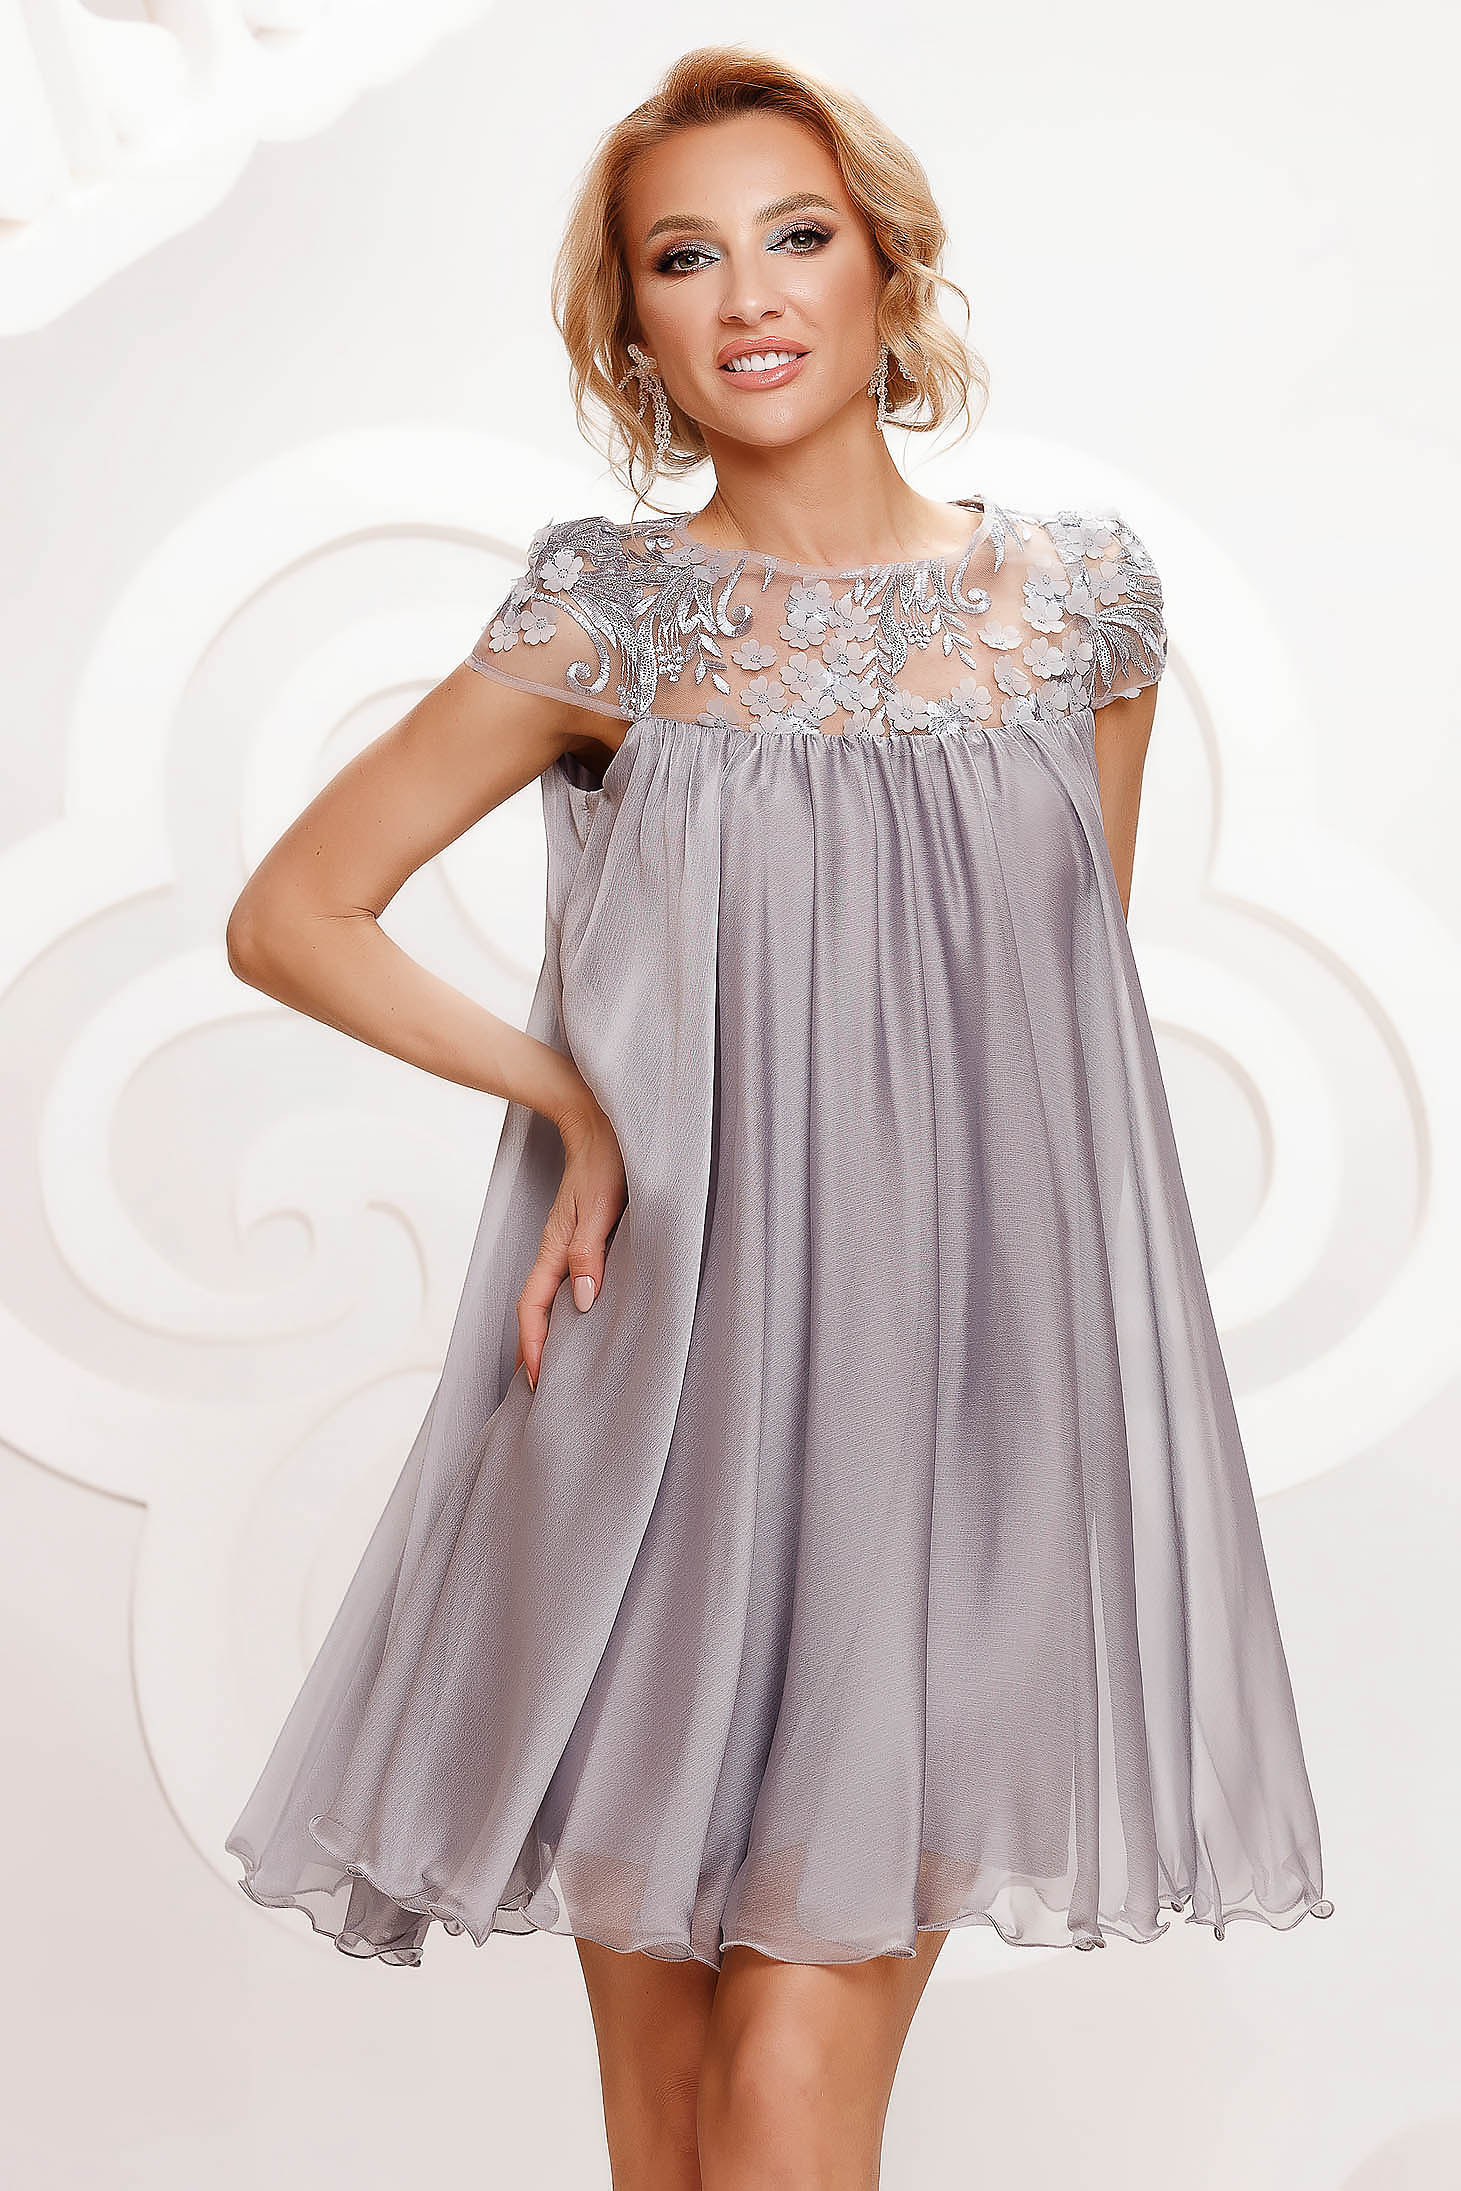 Silver dress from veil fabric occasional with lace details with crystal embellished details loose fit